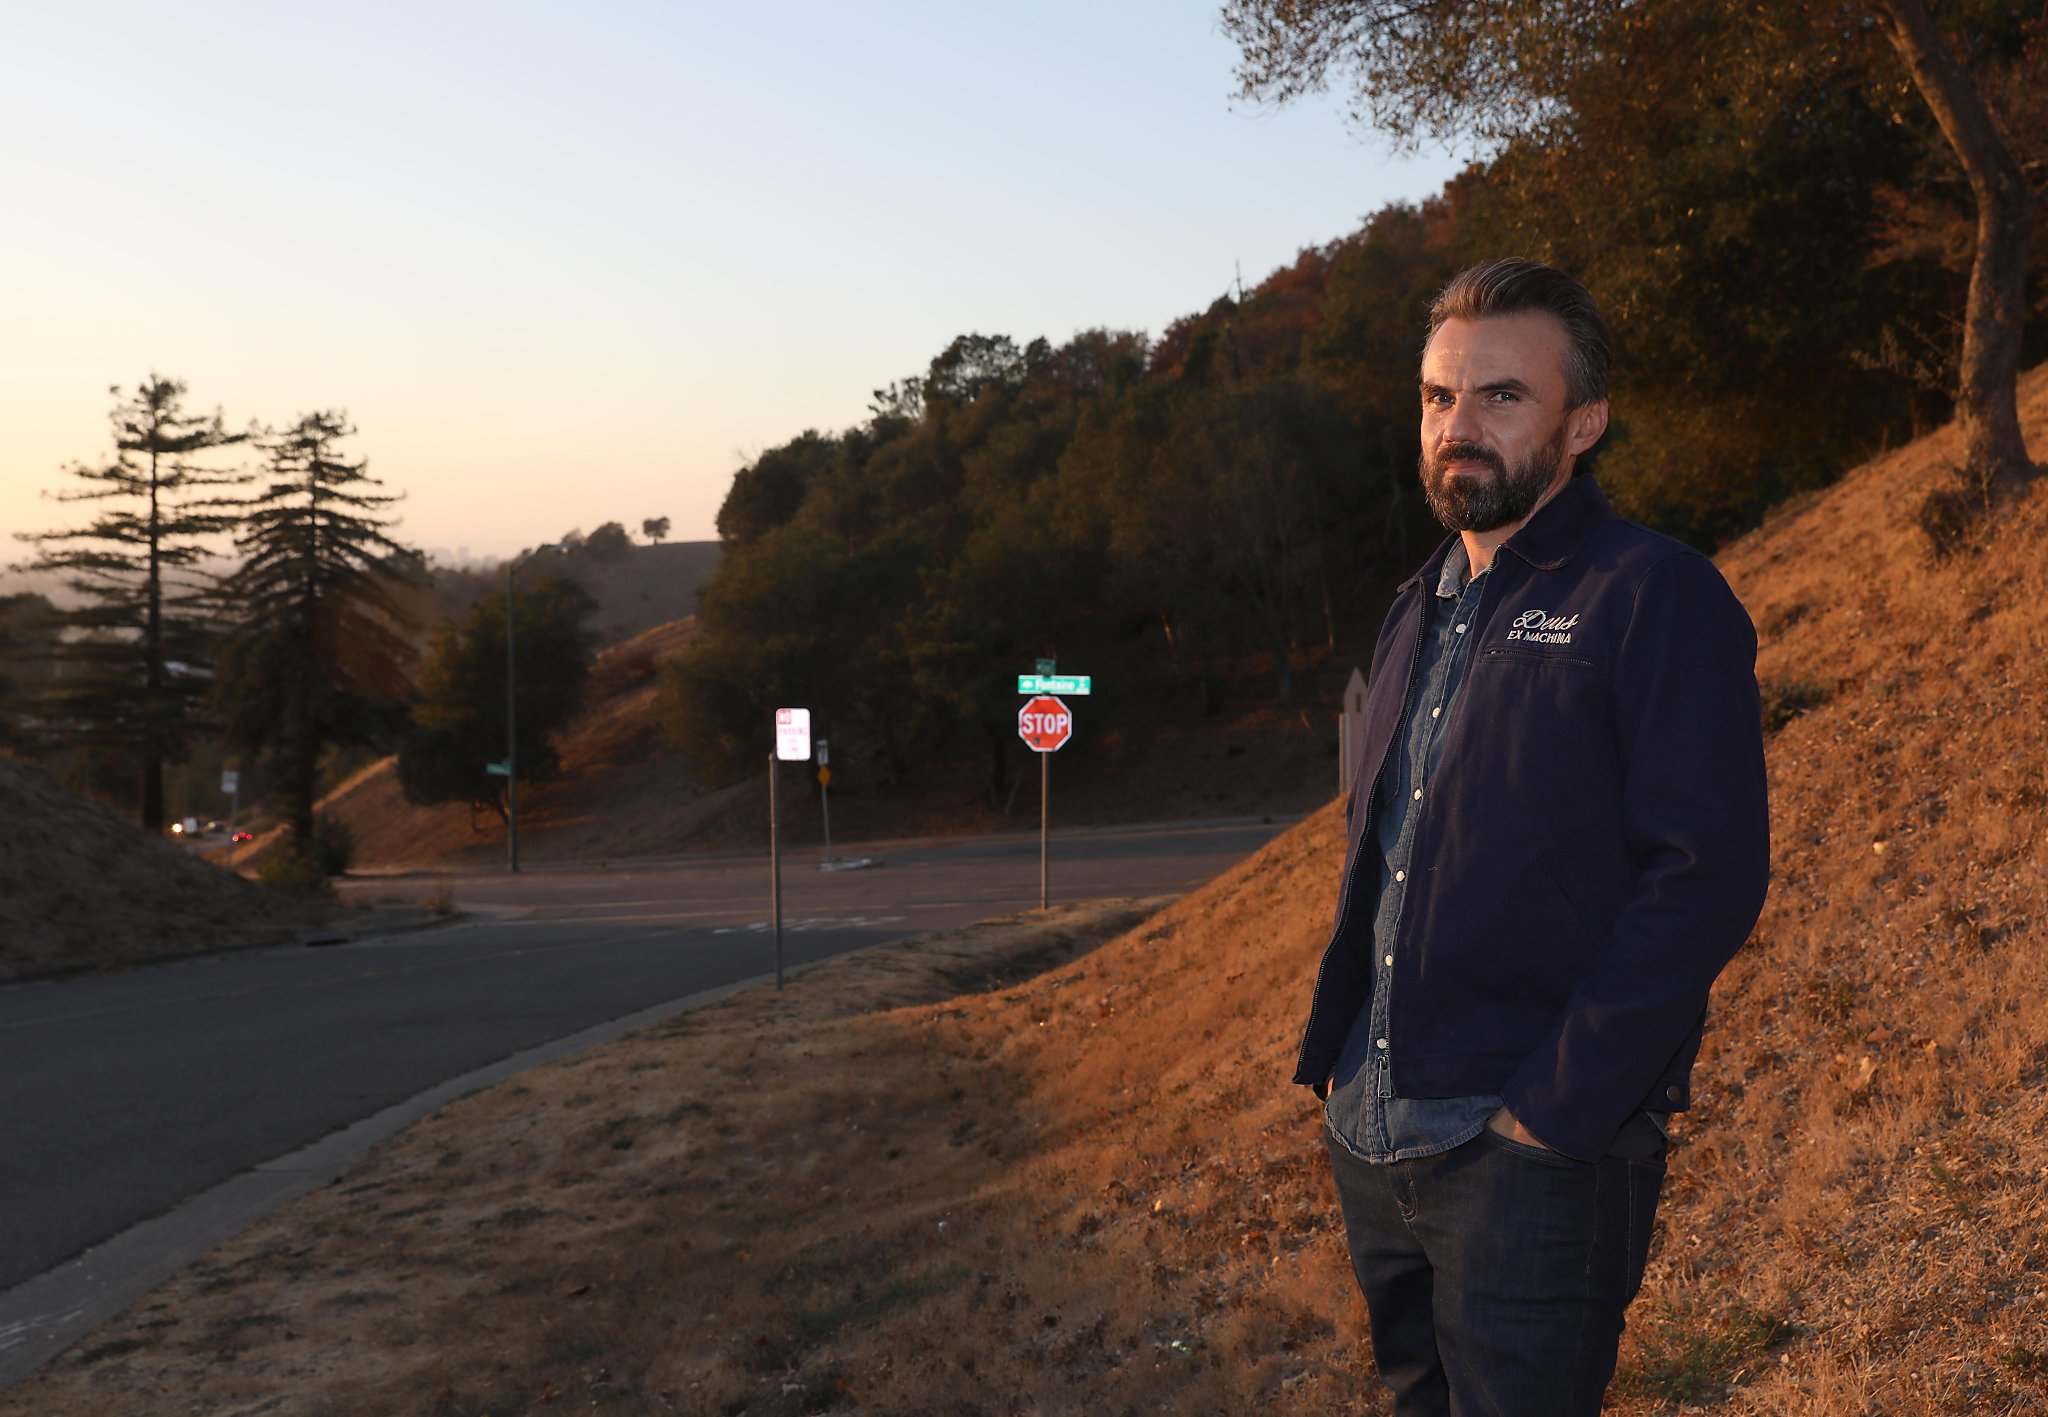 The Oakland hills are alive with the sound of gunfire in the night